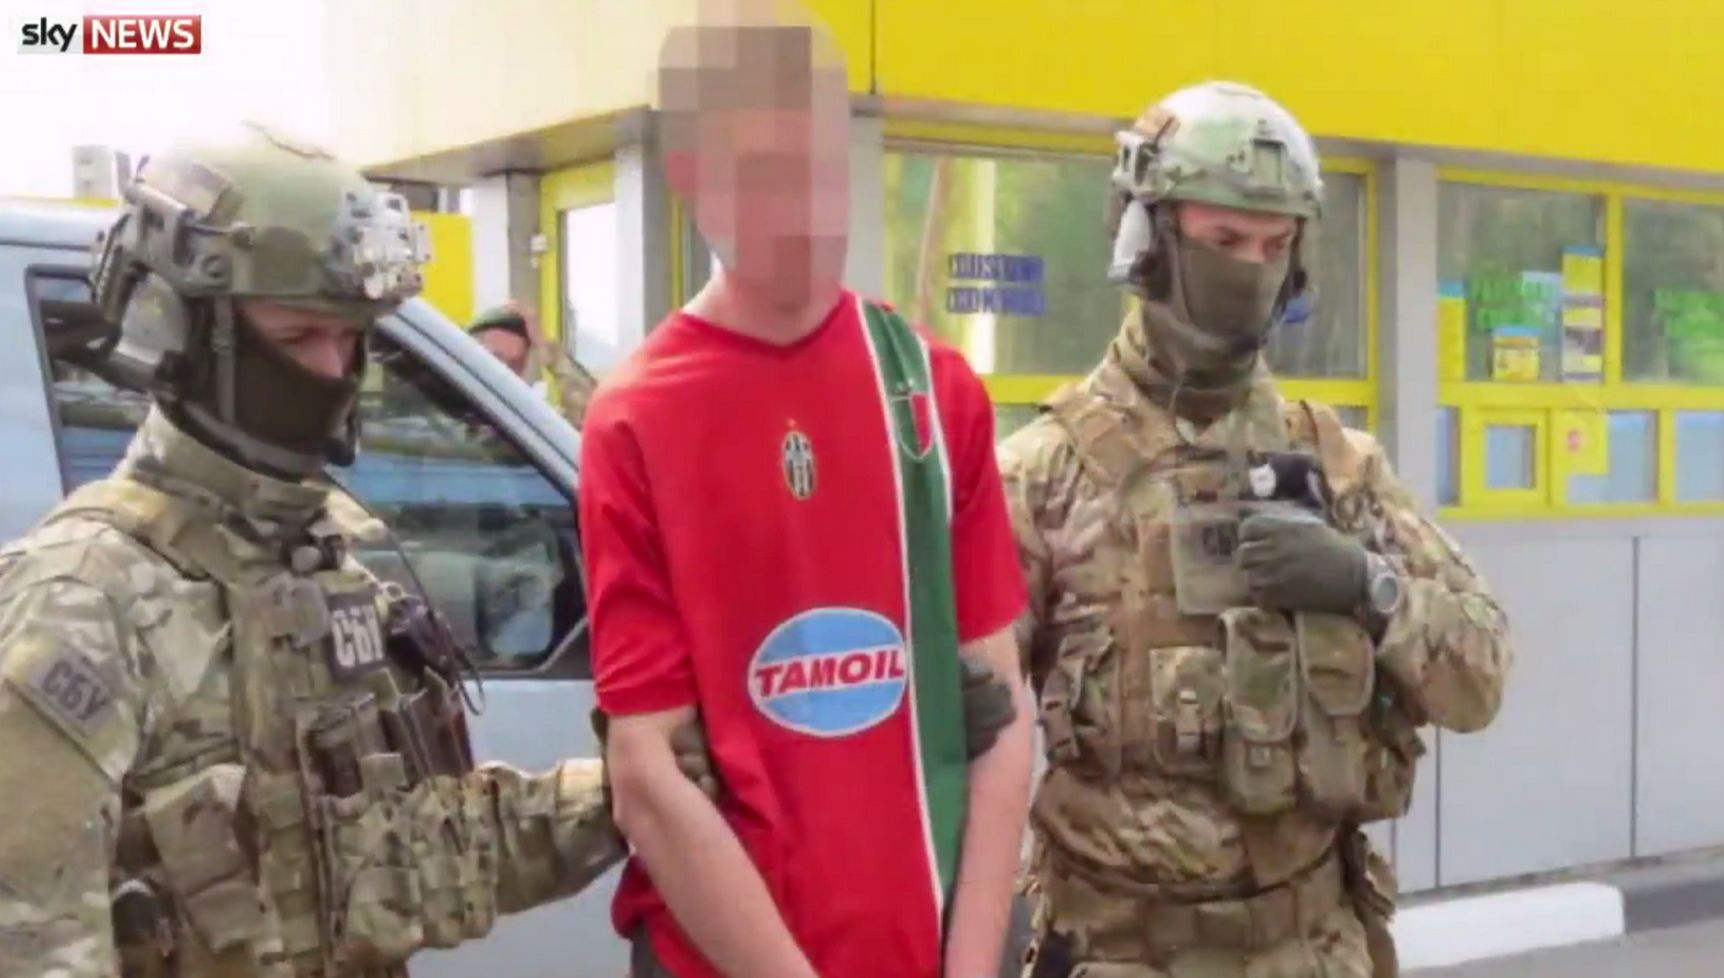 Ukrainian police withGregoire Moutaux who they claim was planning 15 attacks on Euro